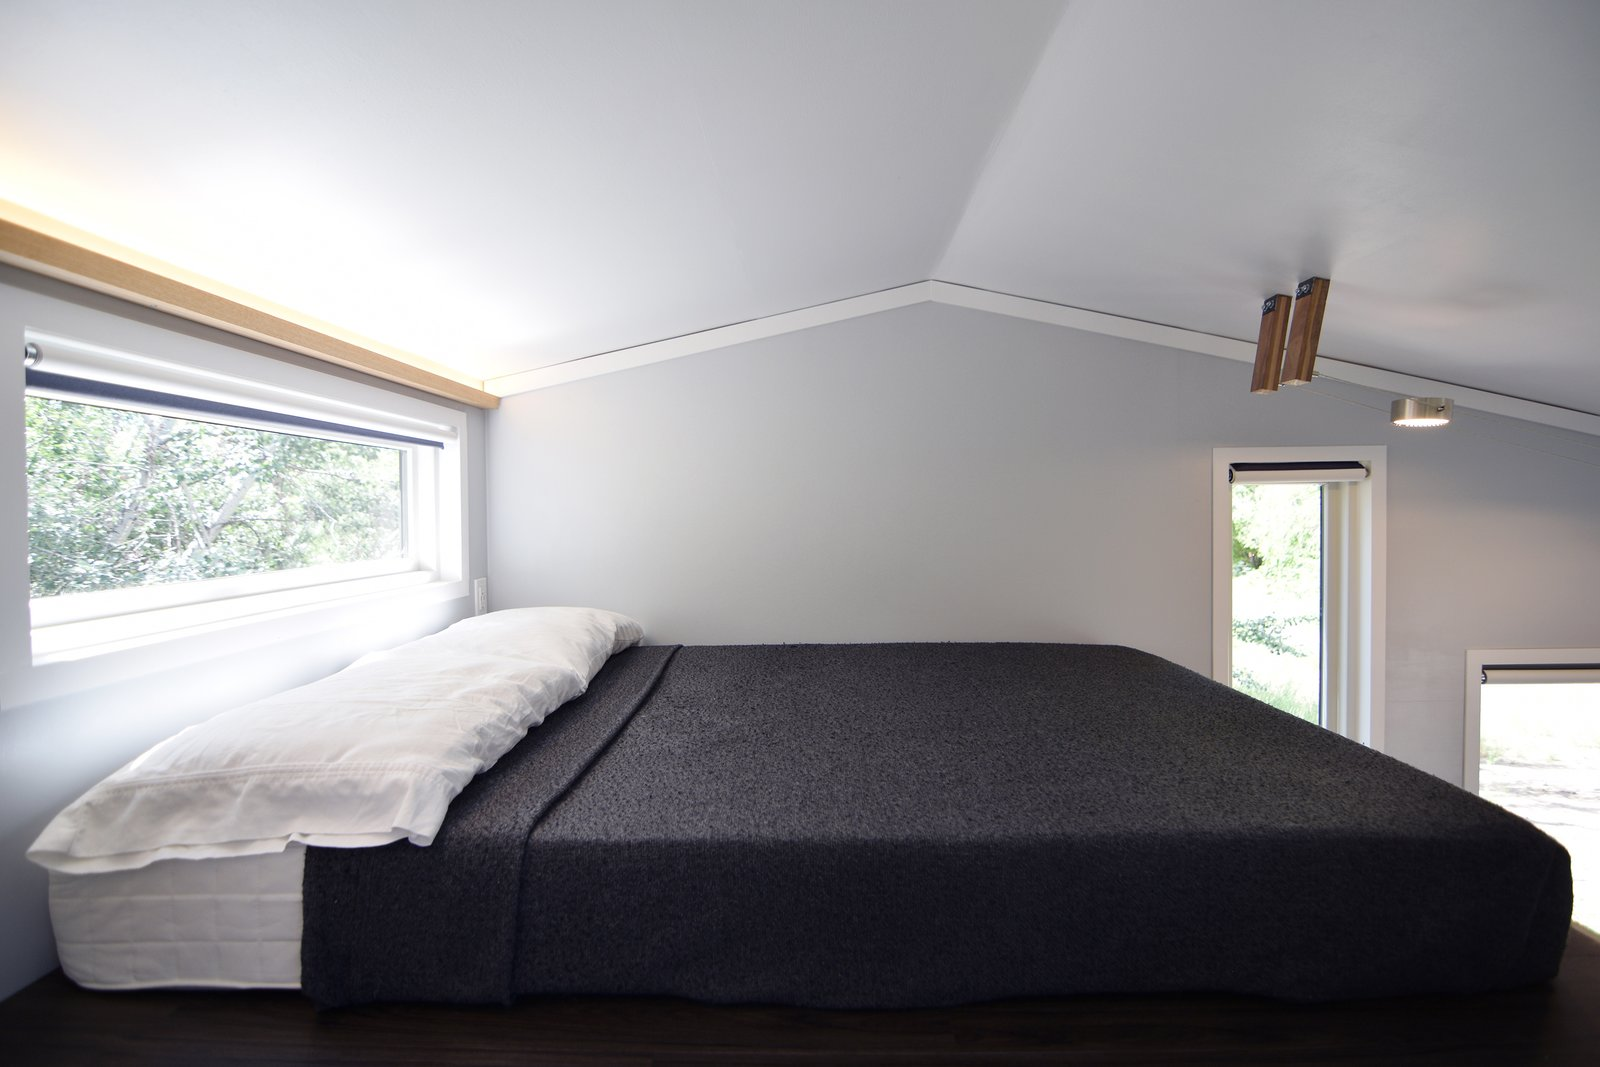 Up in the loft, a full size mattress is set parallel to the length of the house, with a strip of window gently illuminating this rest area.